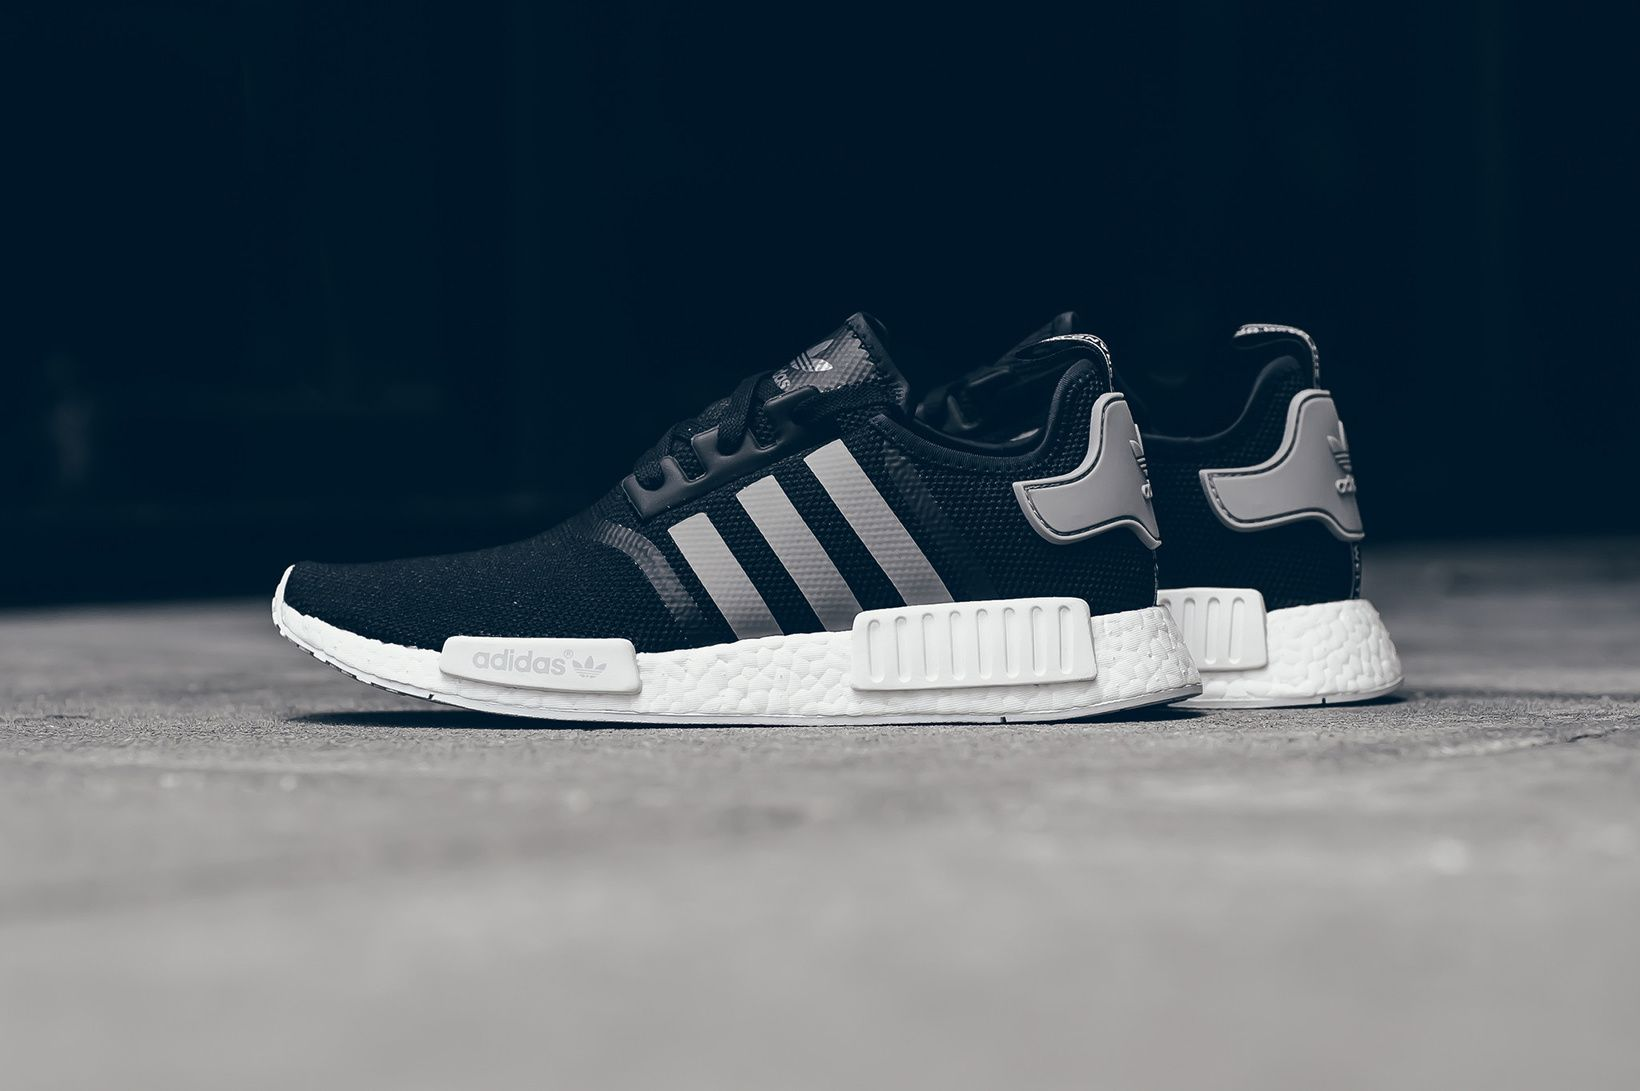 88a3ffbaf2e5 adidas Drops Another Black   White NMD